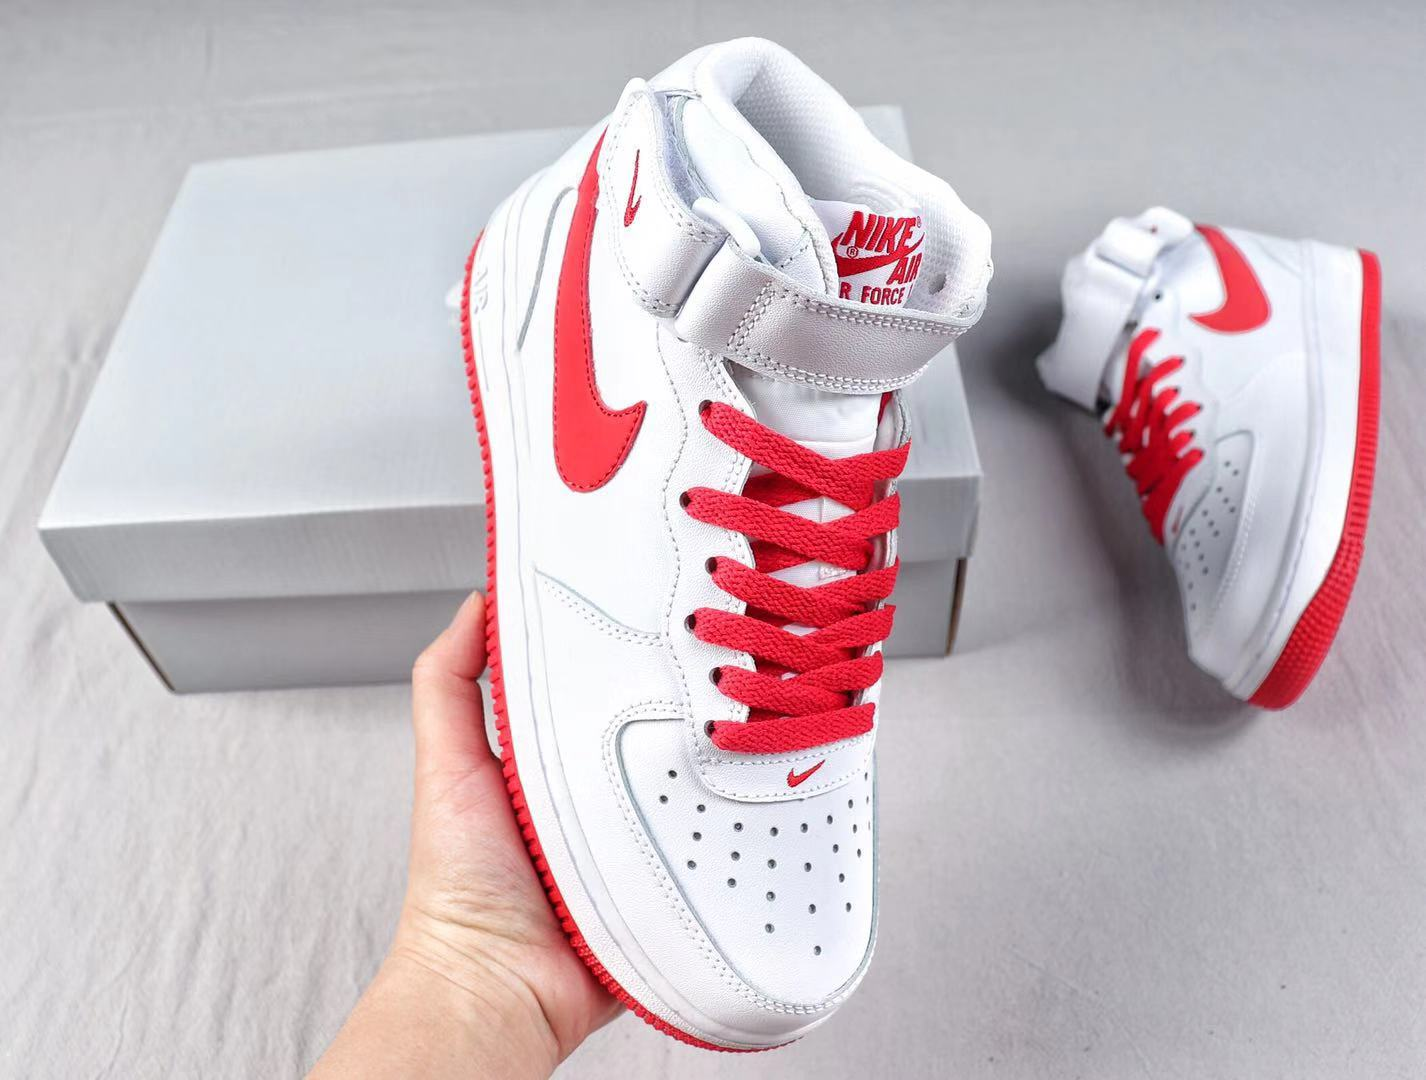 """Nike Air Force 1'07 Mid """"Demon"""" White/Red Sneakers Online Sale AQ8650-105"""